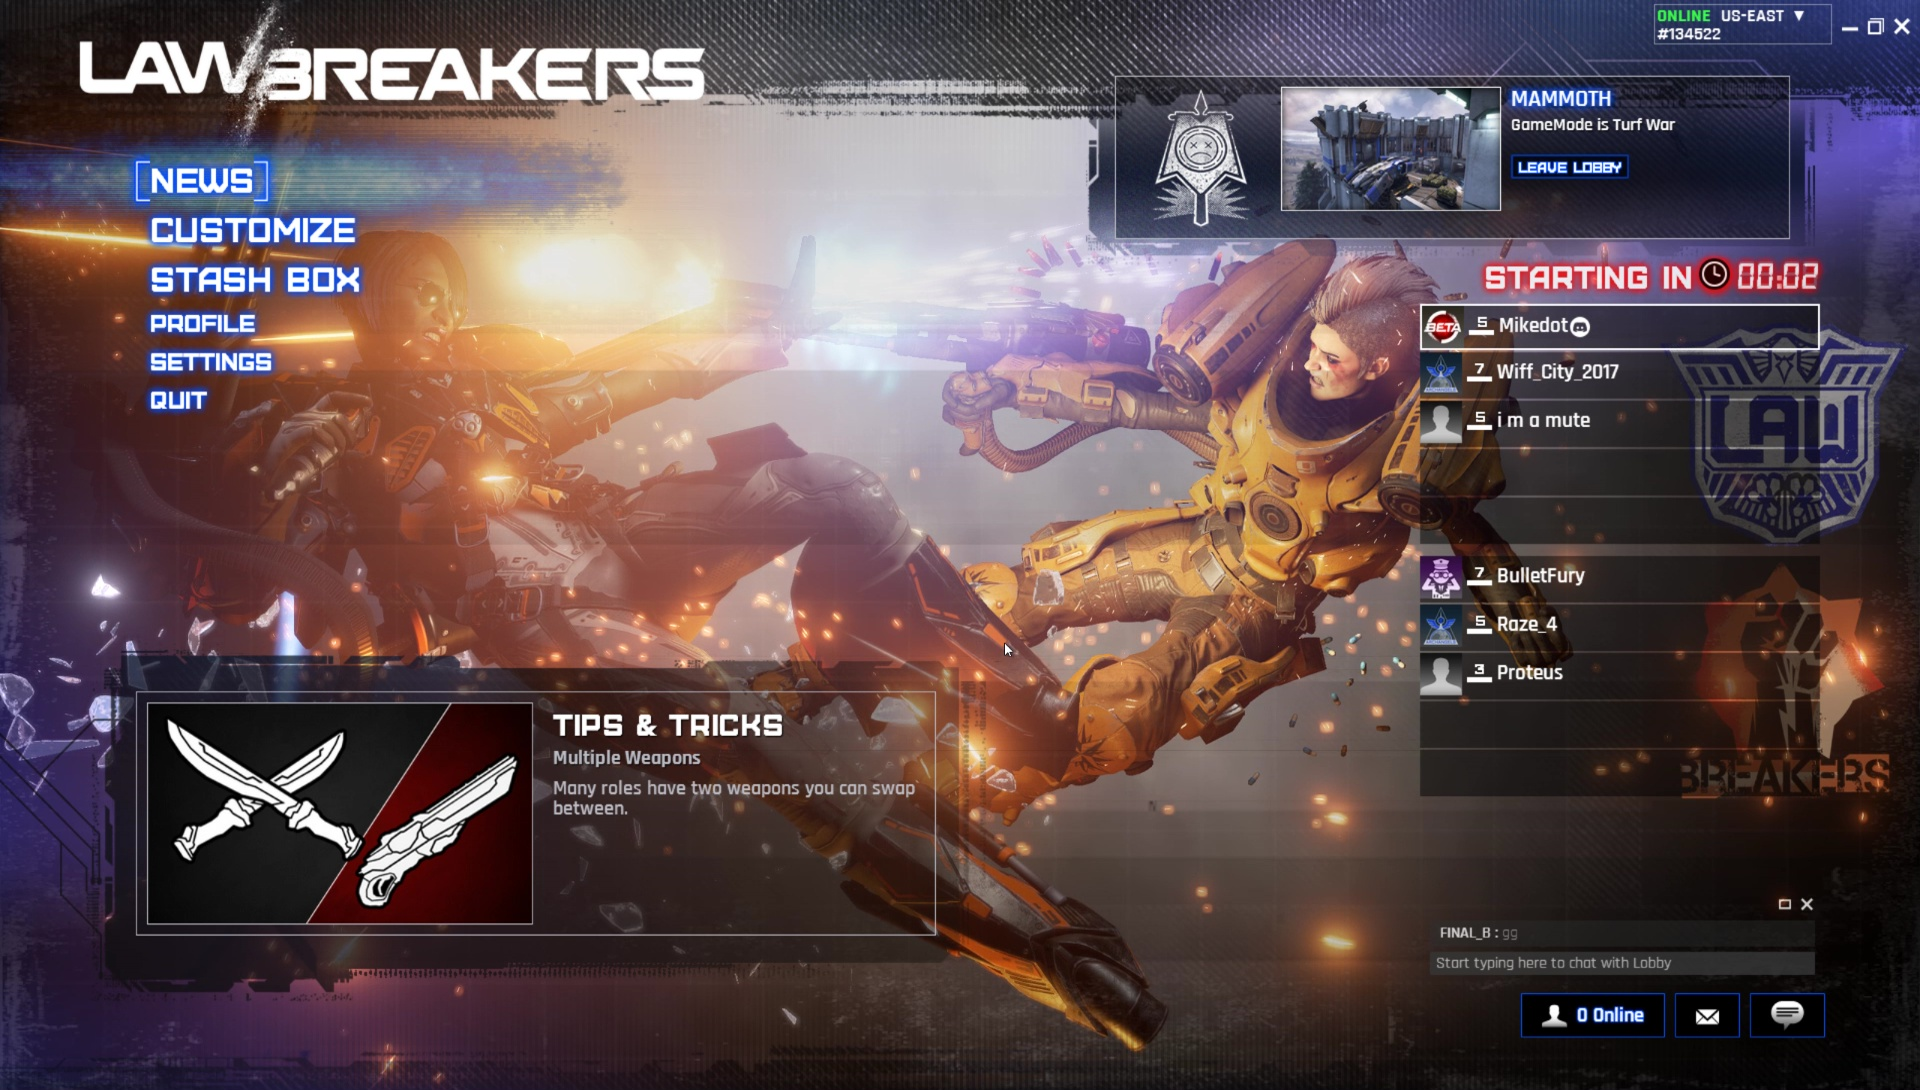 LawBreakers CBT - 1